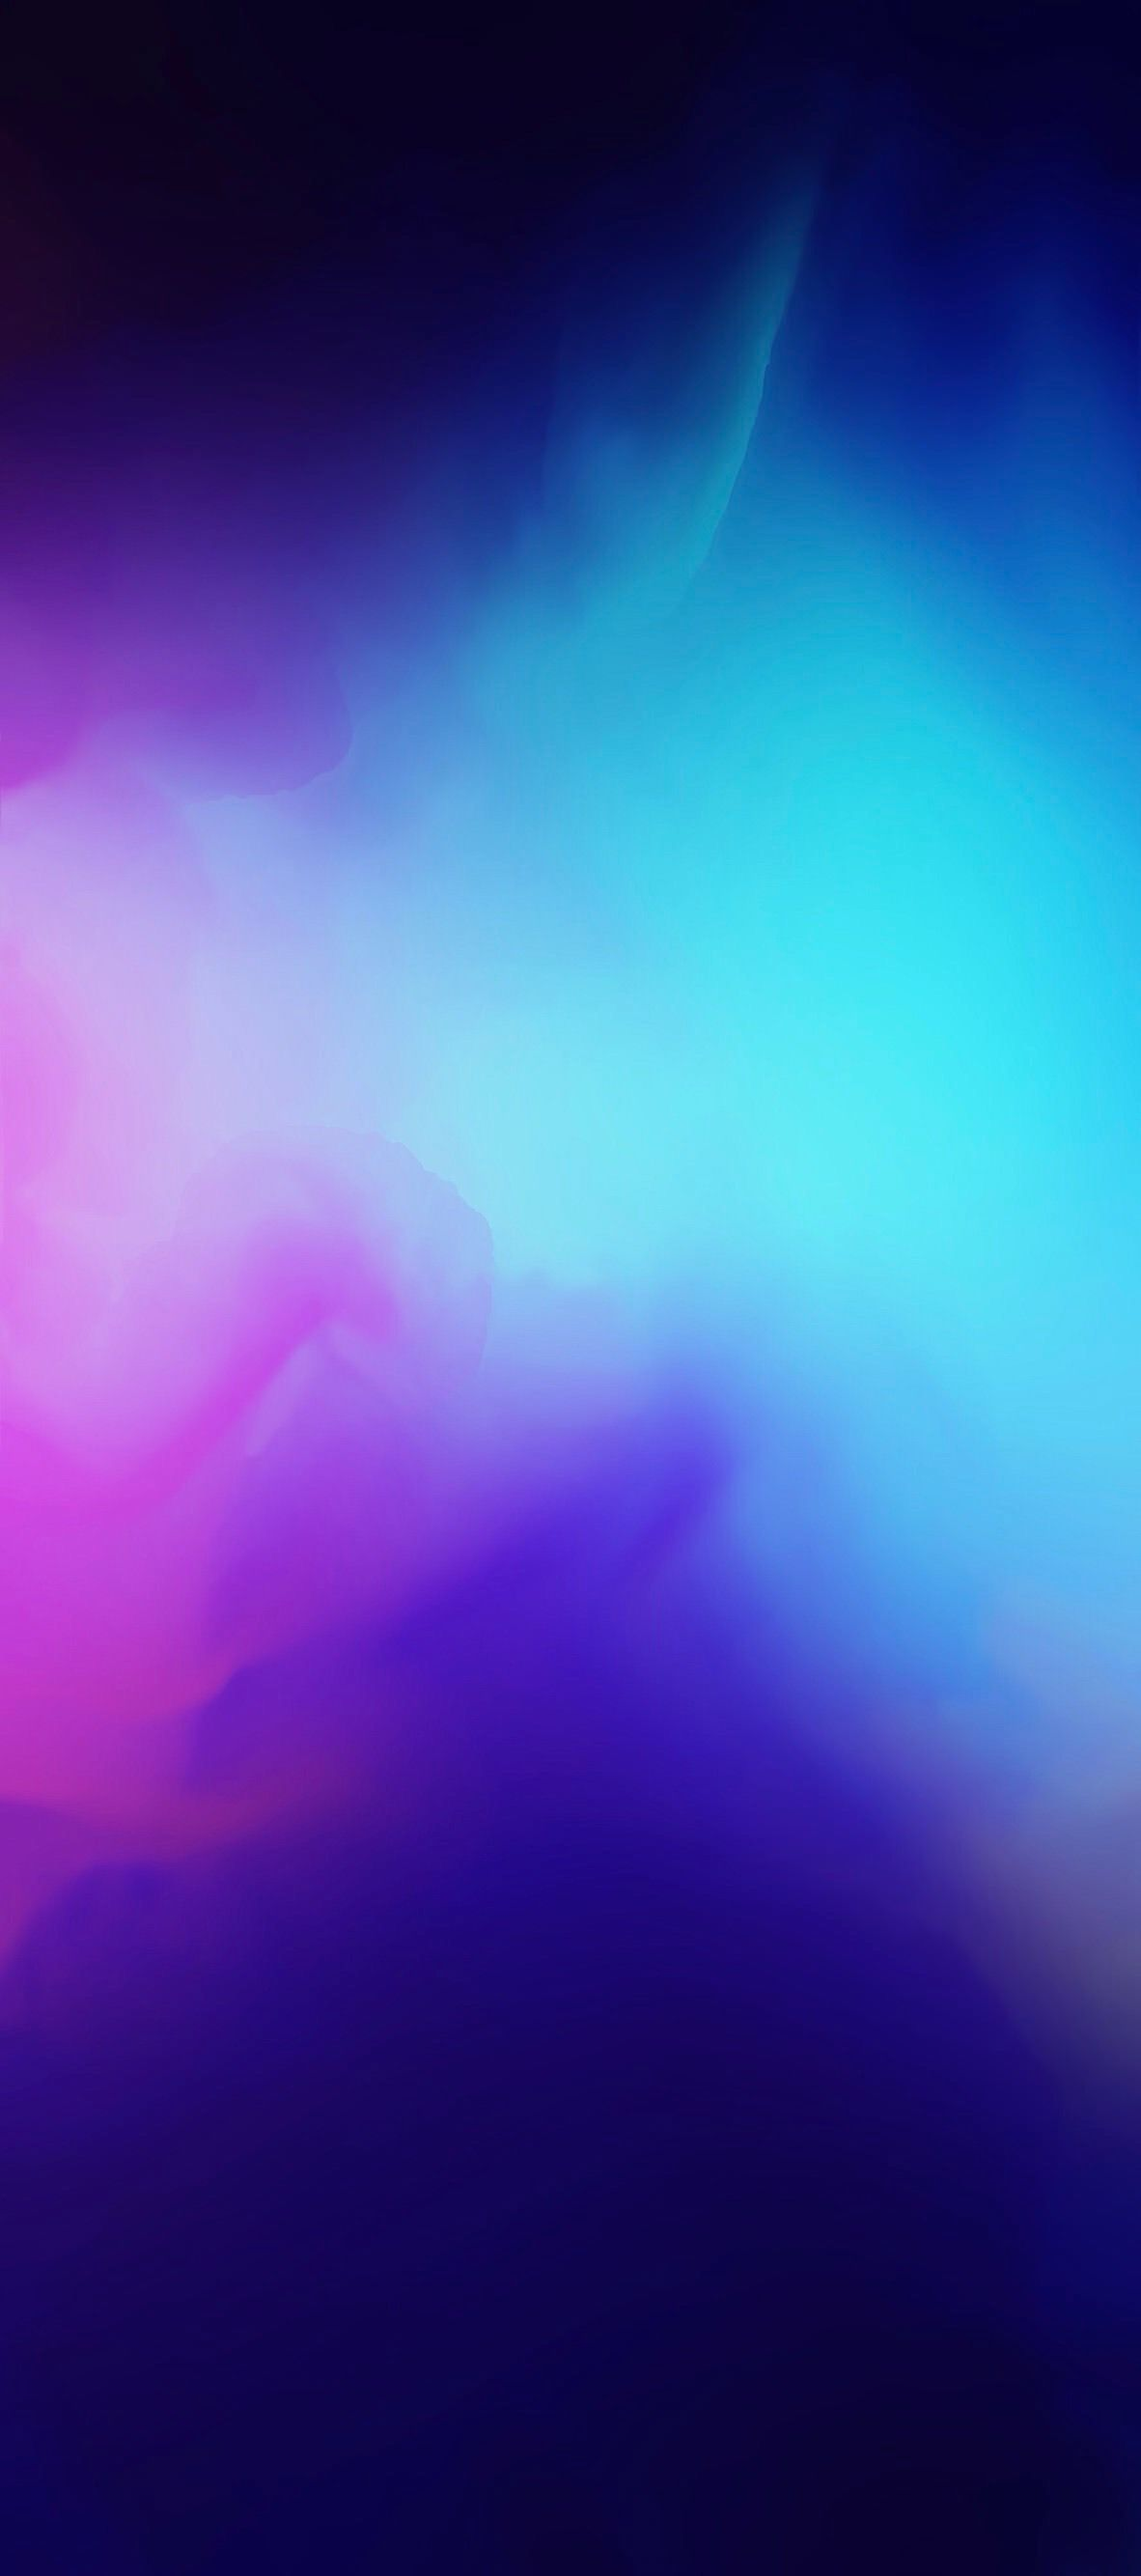 Ios 11 Iphone X Blue Purple Abstract Apple Wallpaper Iphone